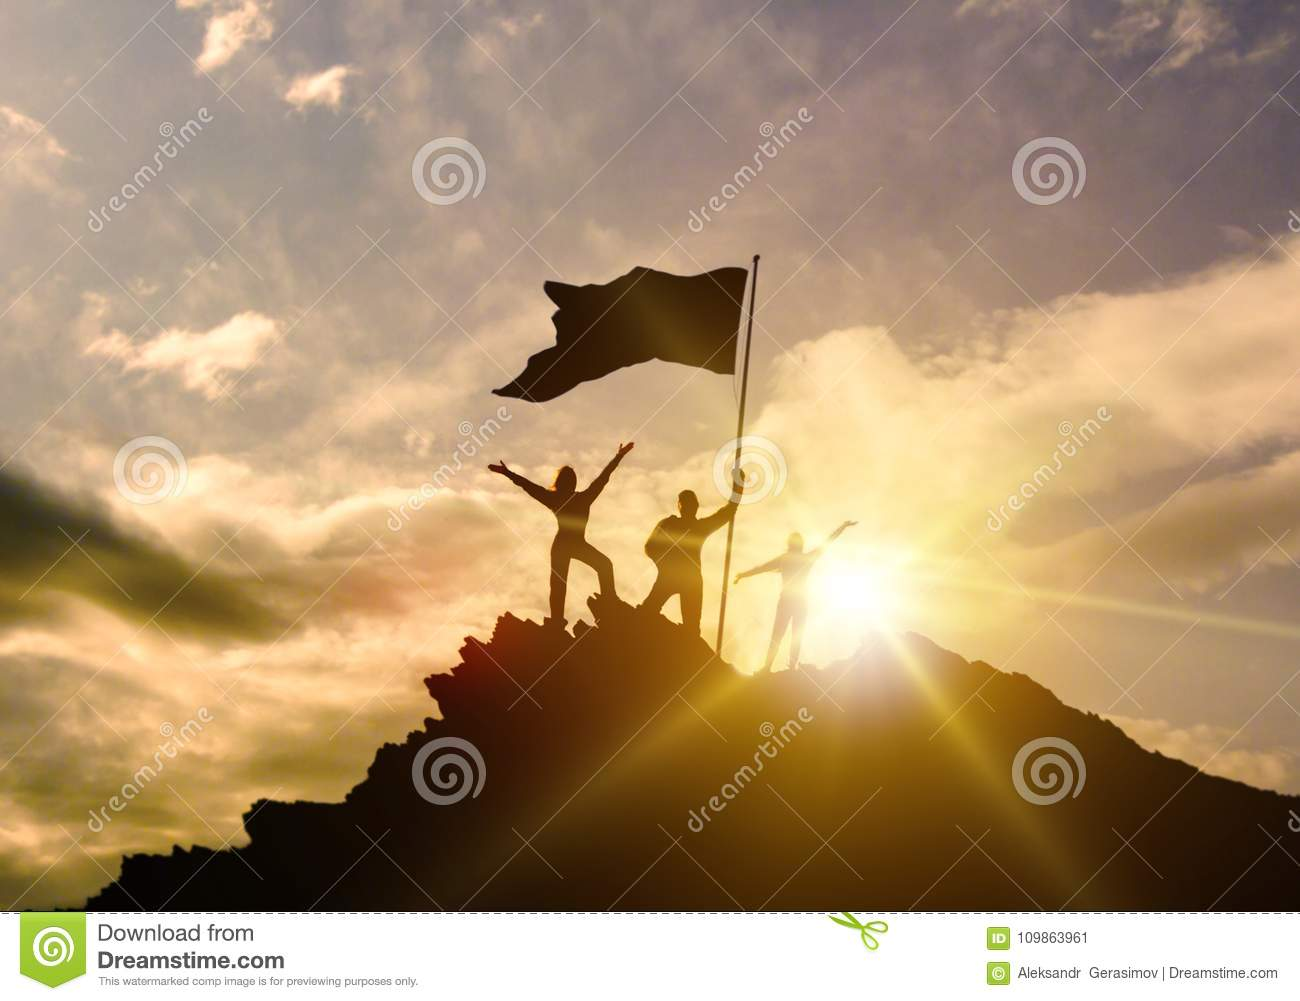 High success, family three silhouette, father of mother and child holding flag of victory on top of mountain, hands up.